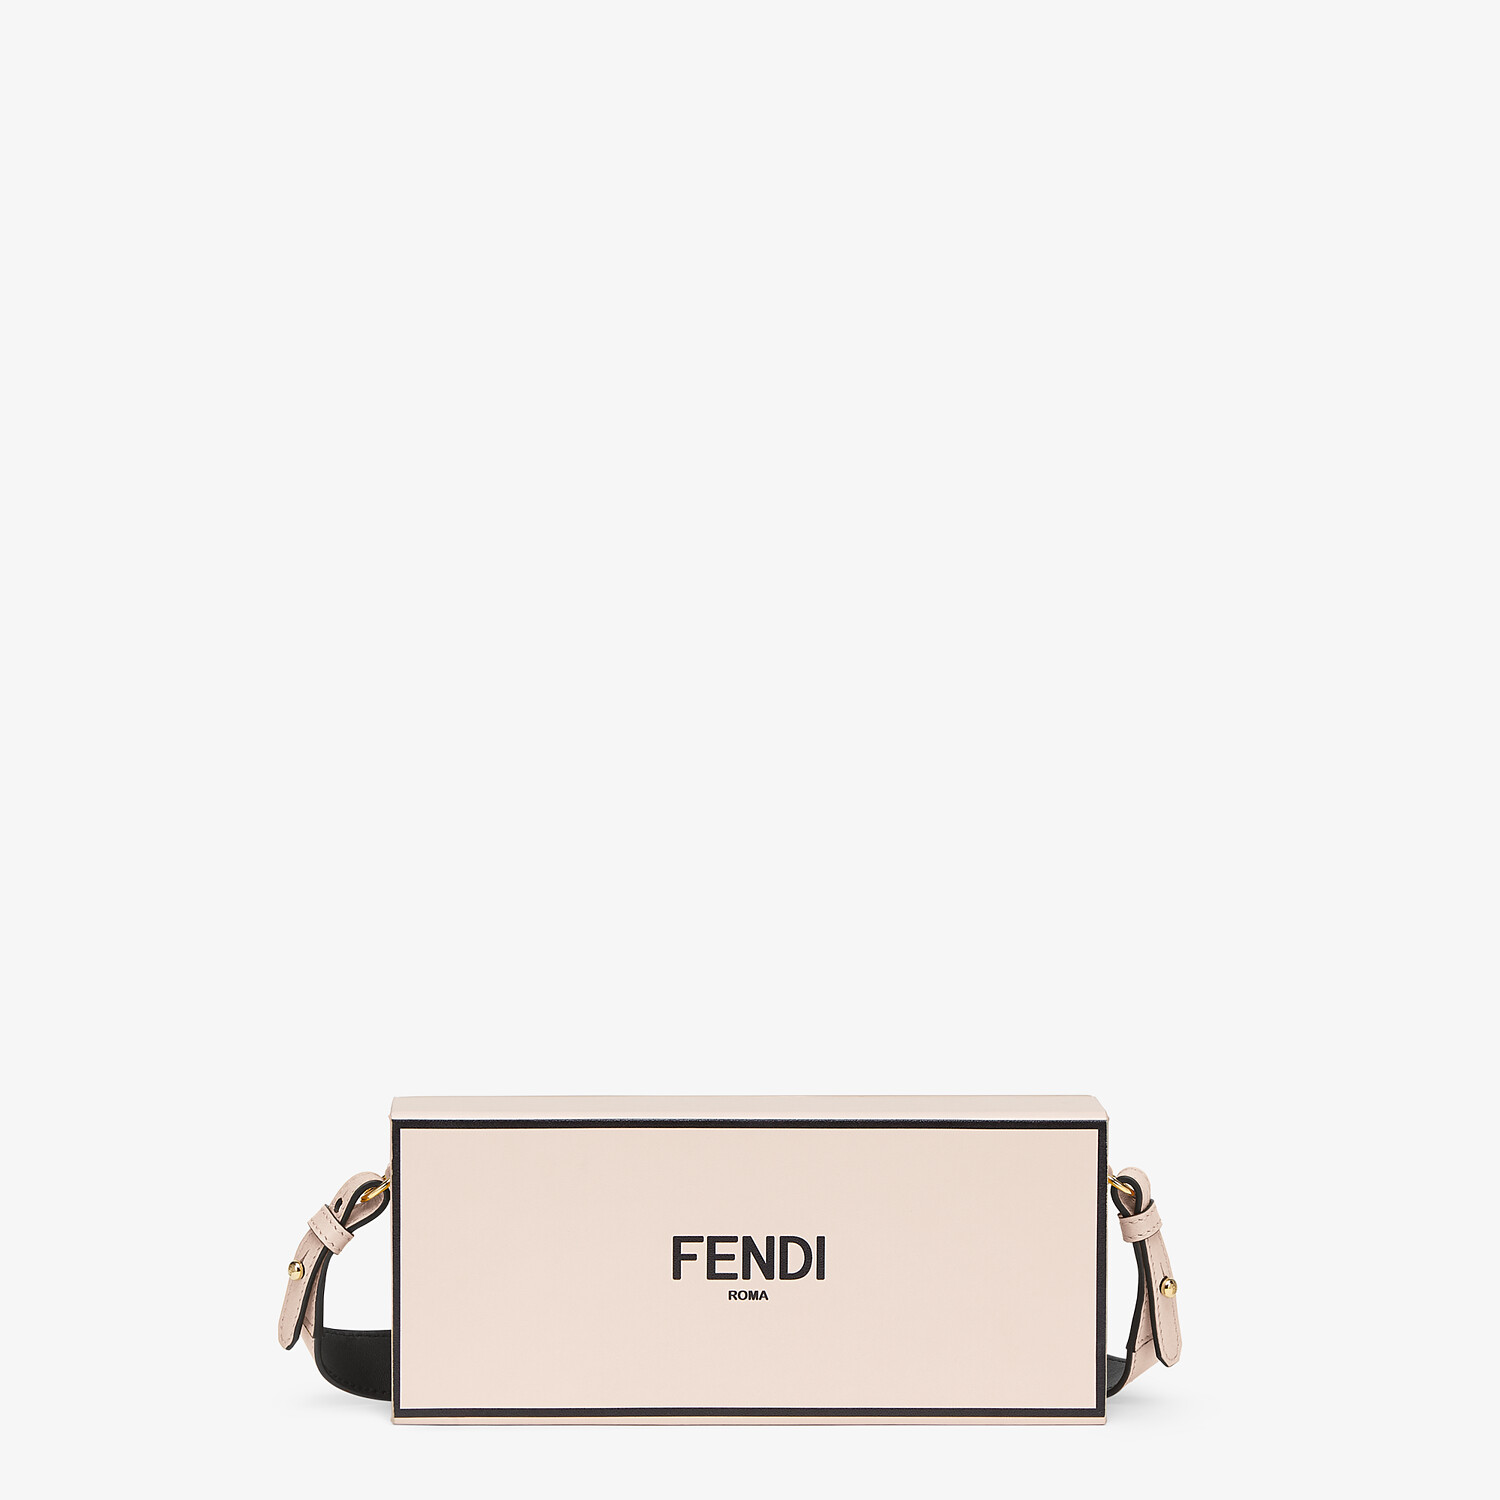 FENDI HORIZONTAL BOX - Pink leather bag - view 1 detail